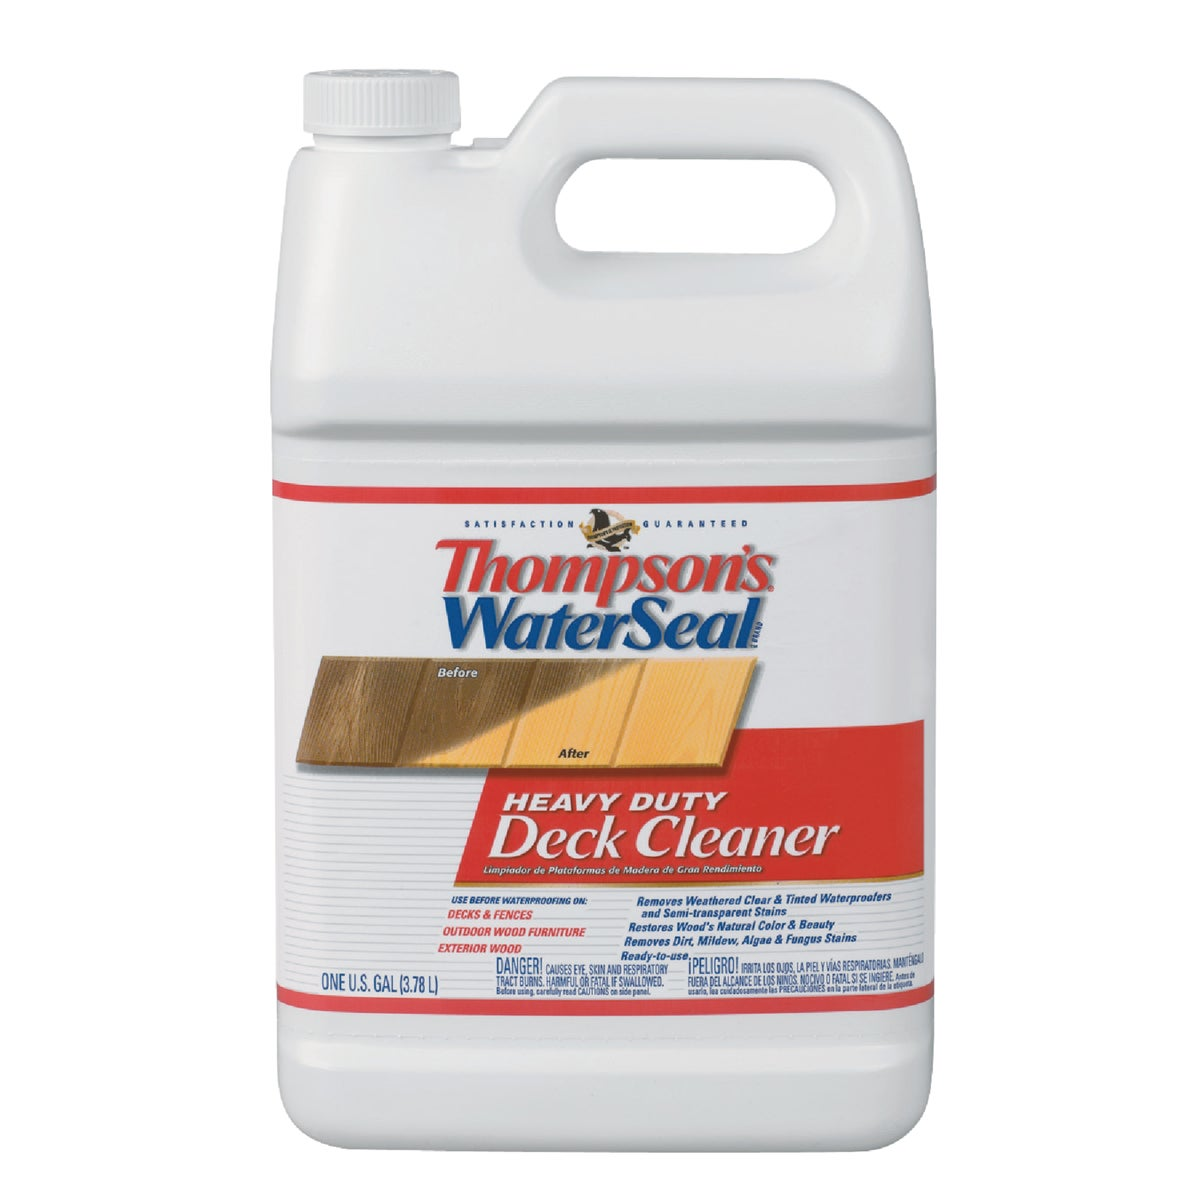 HEAVY DUTY DECK CLEANER - 87701 by Thompsons